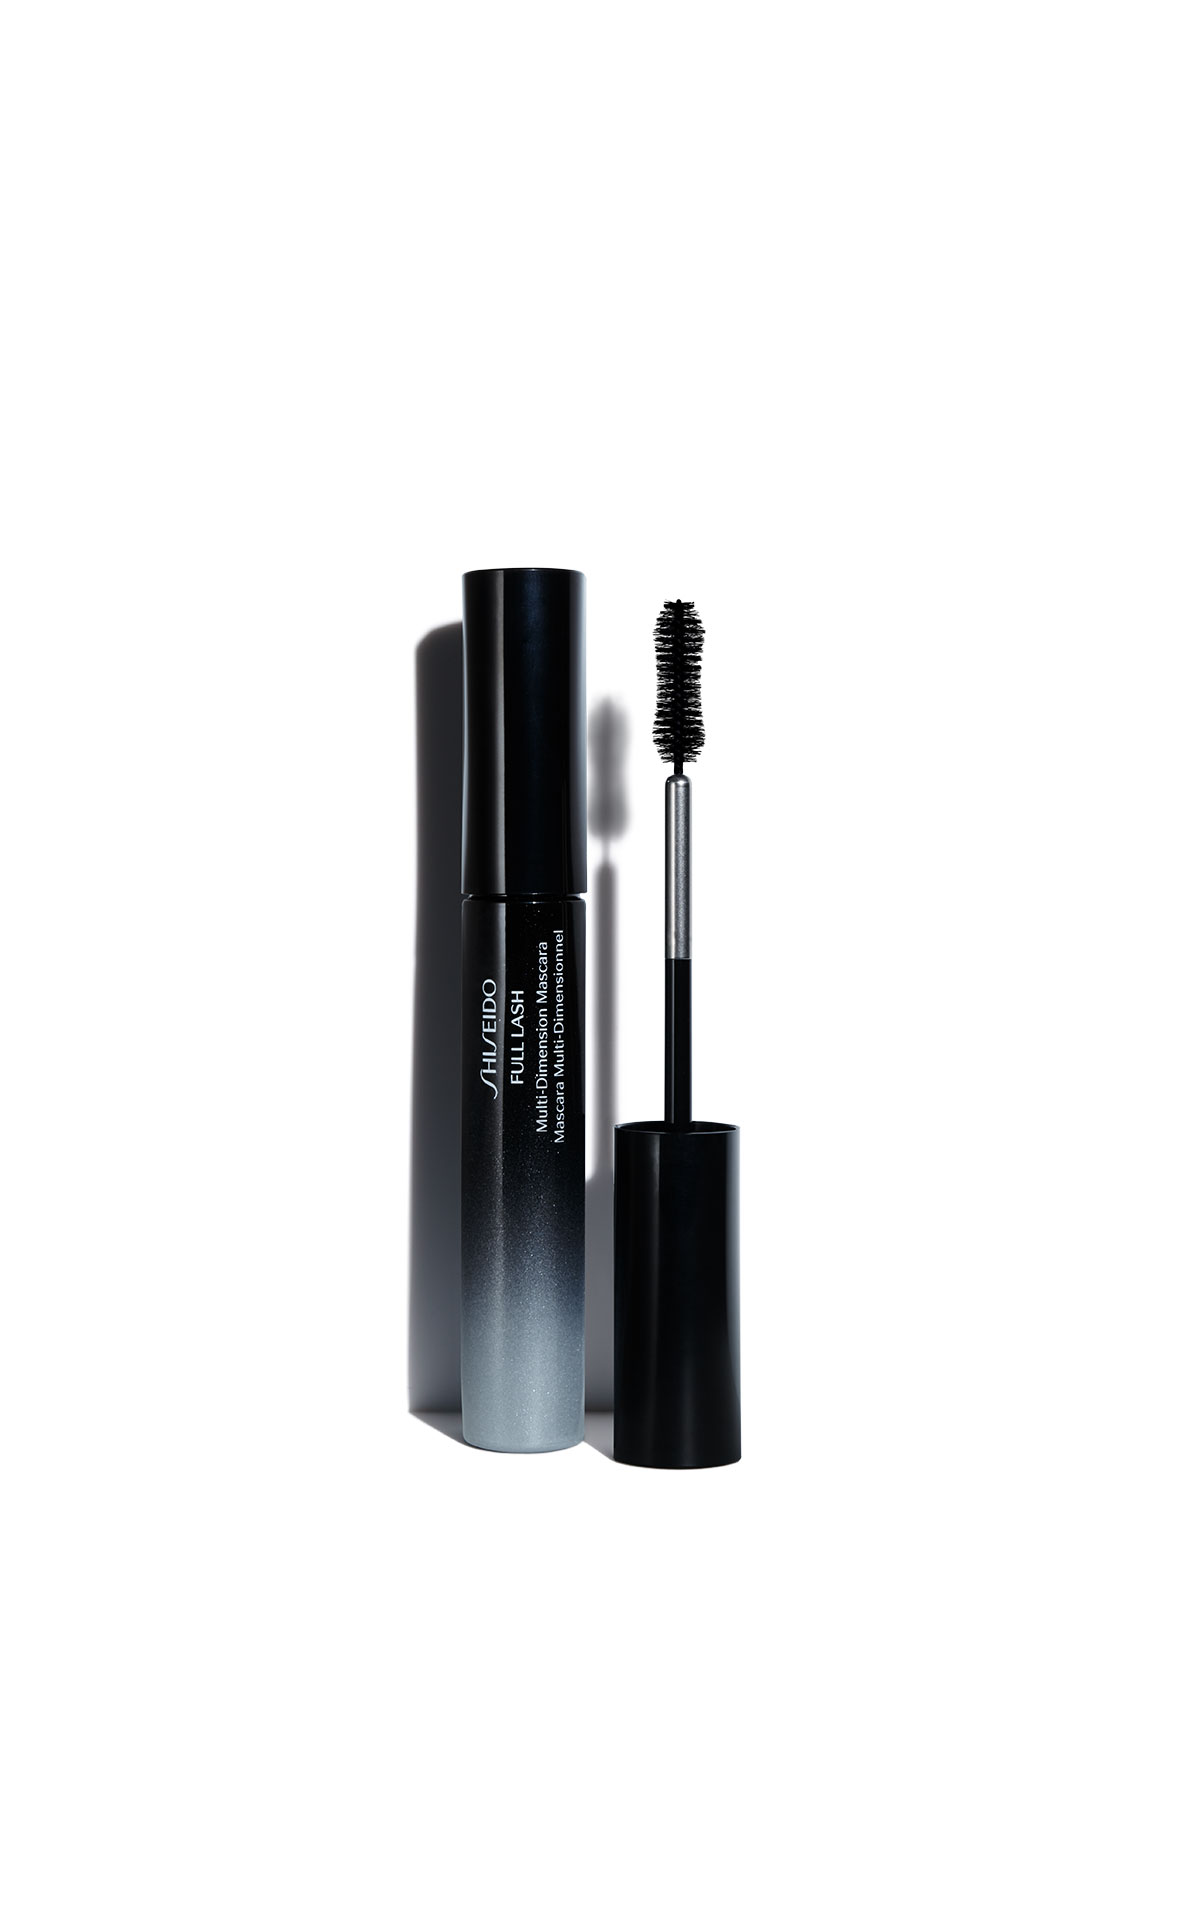 Beauté Prestige International Shiseido Full lash mascara from Bicester Village